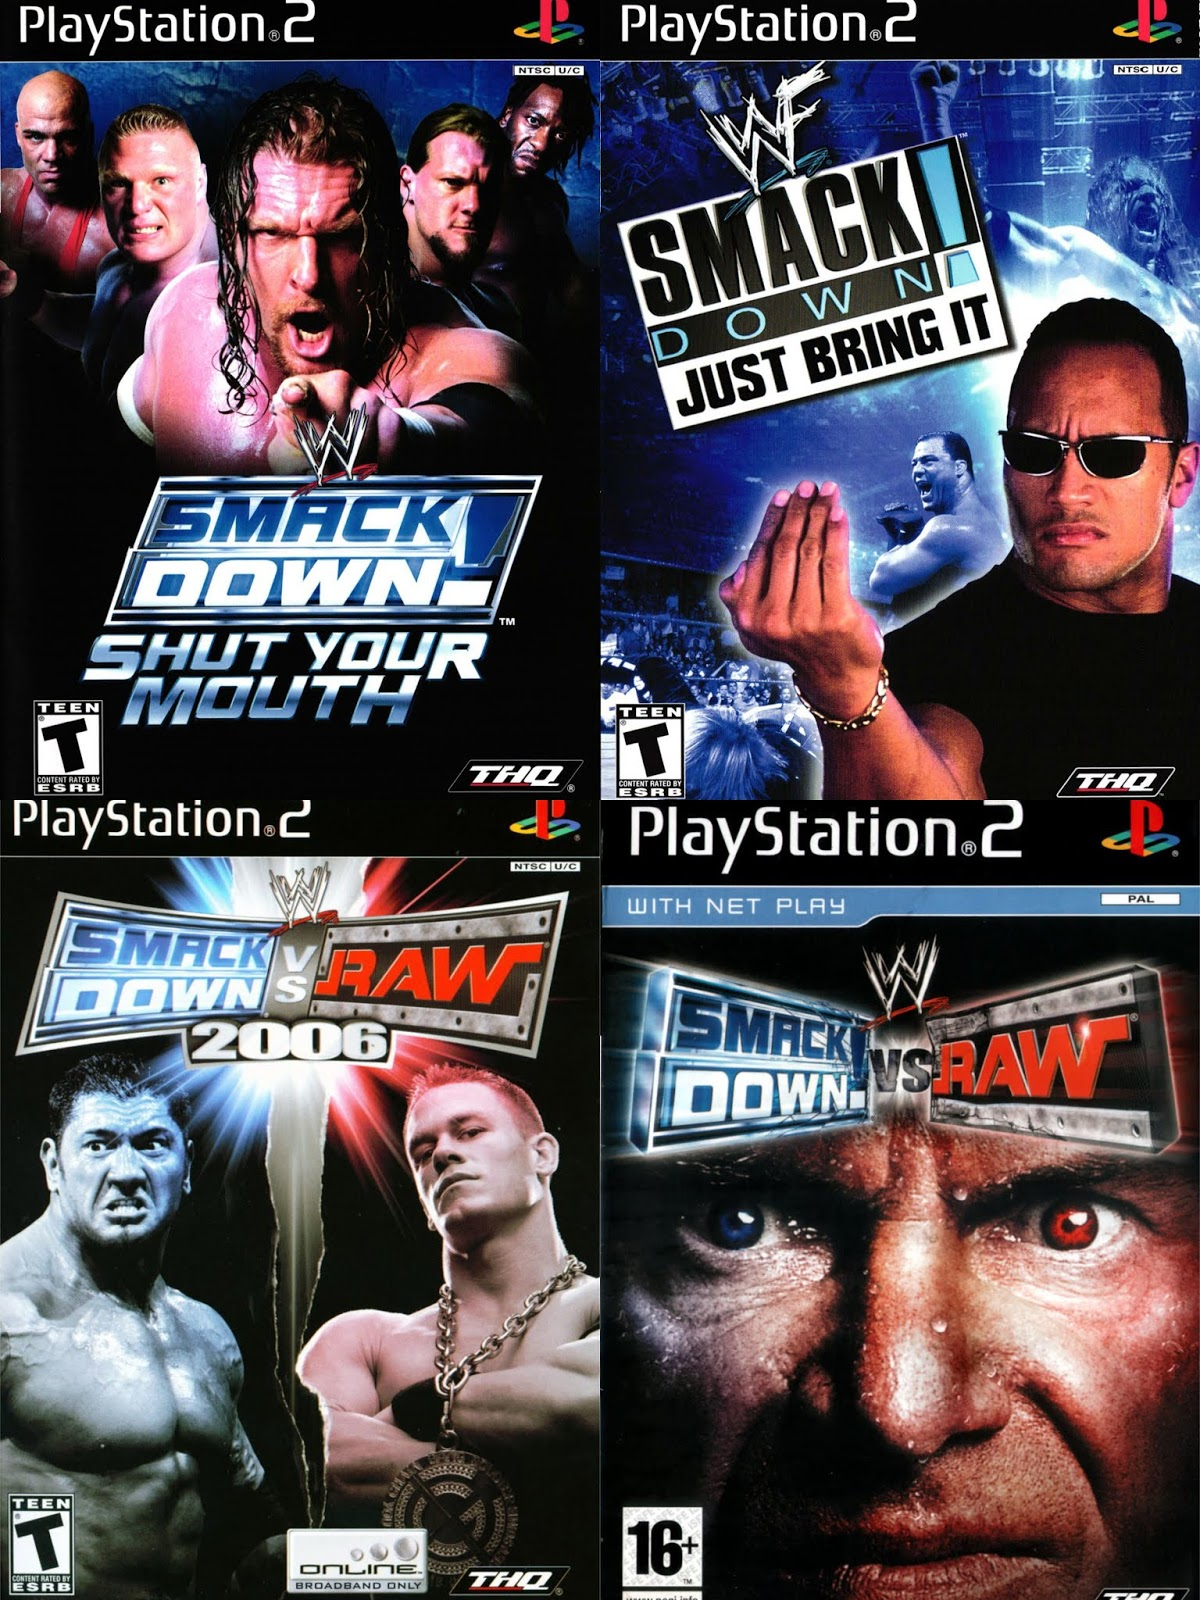 DAR Games: Ranking The WWE PS2 Games - DefineARevolution com